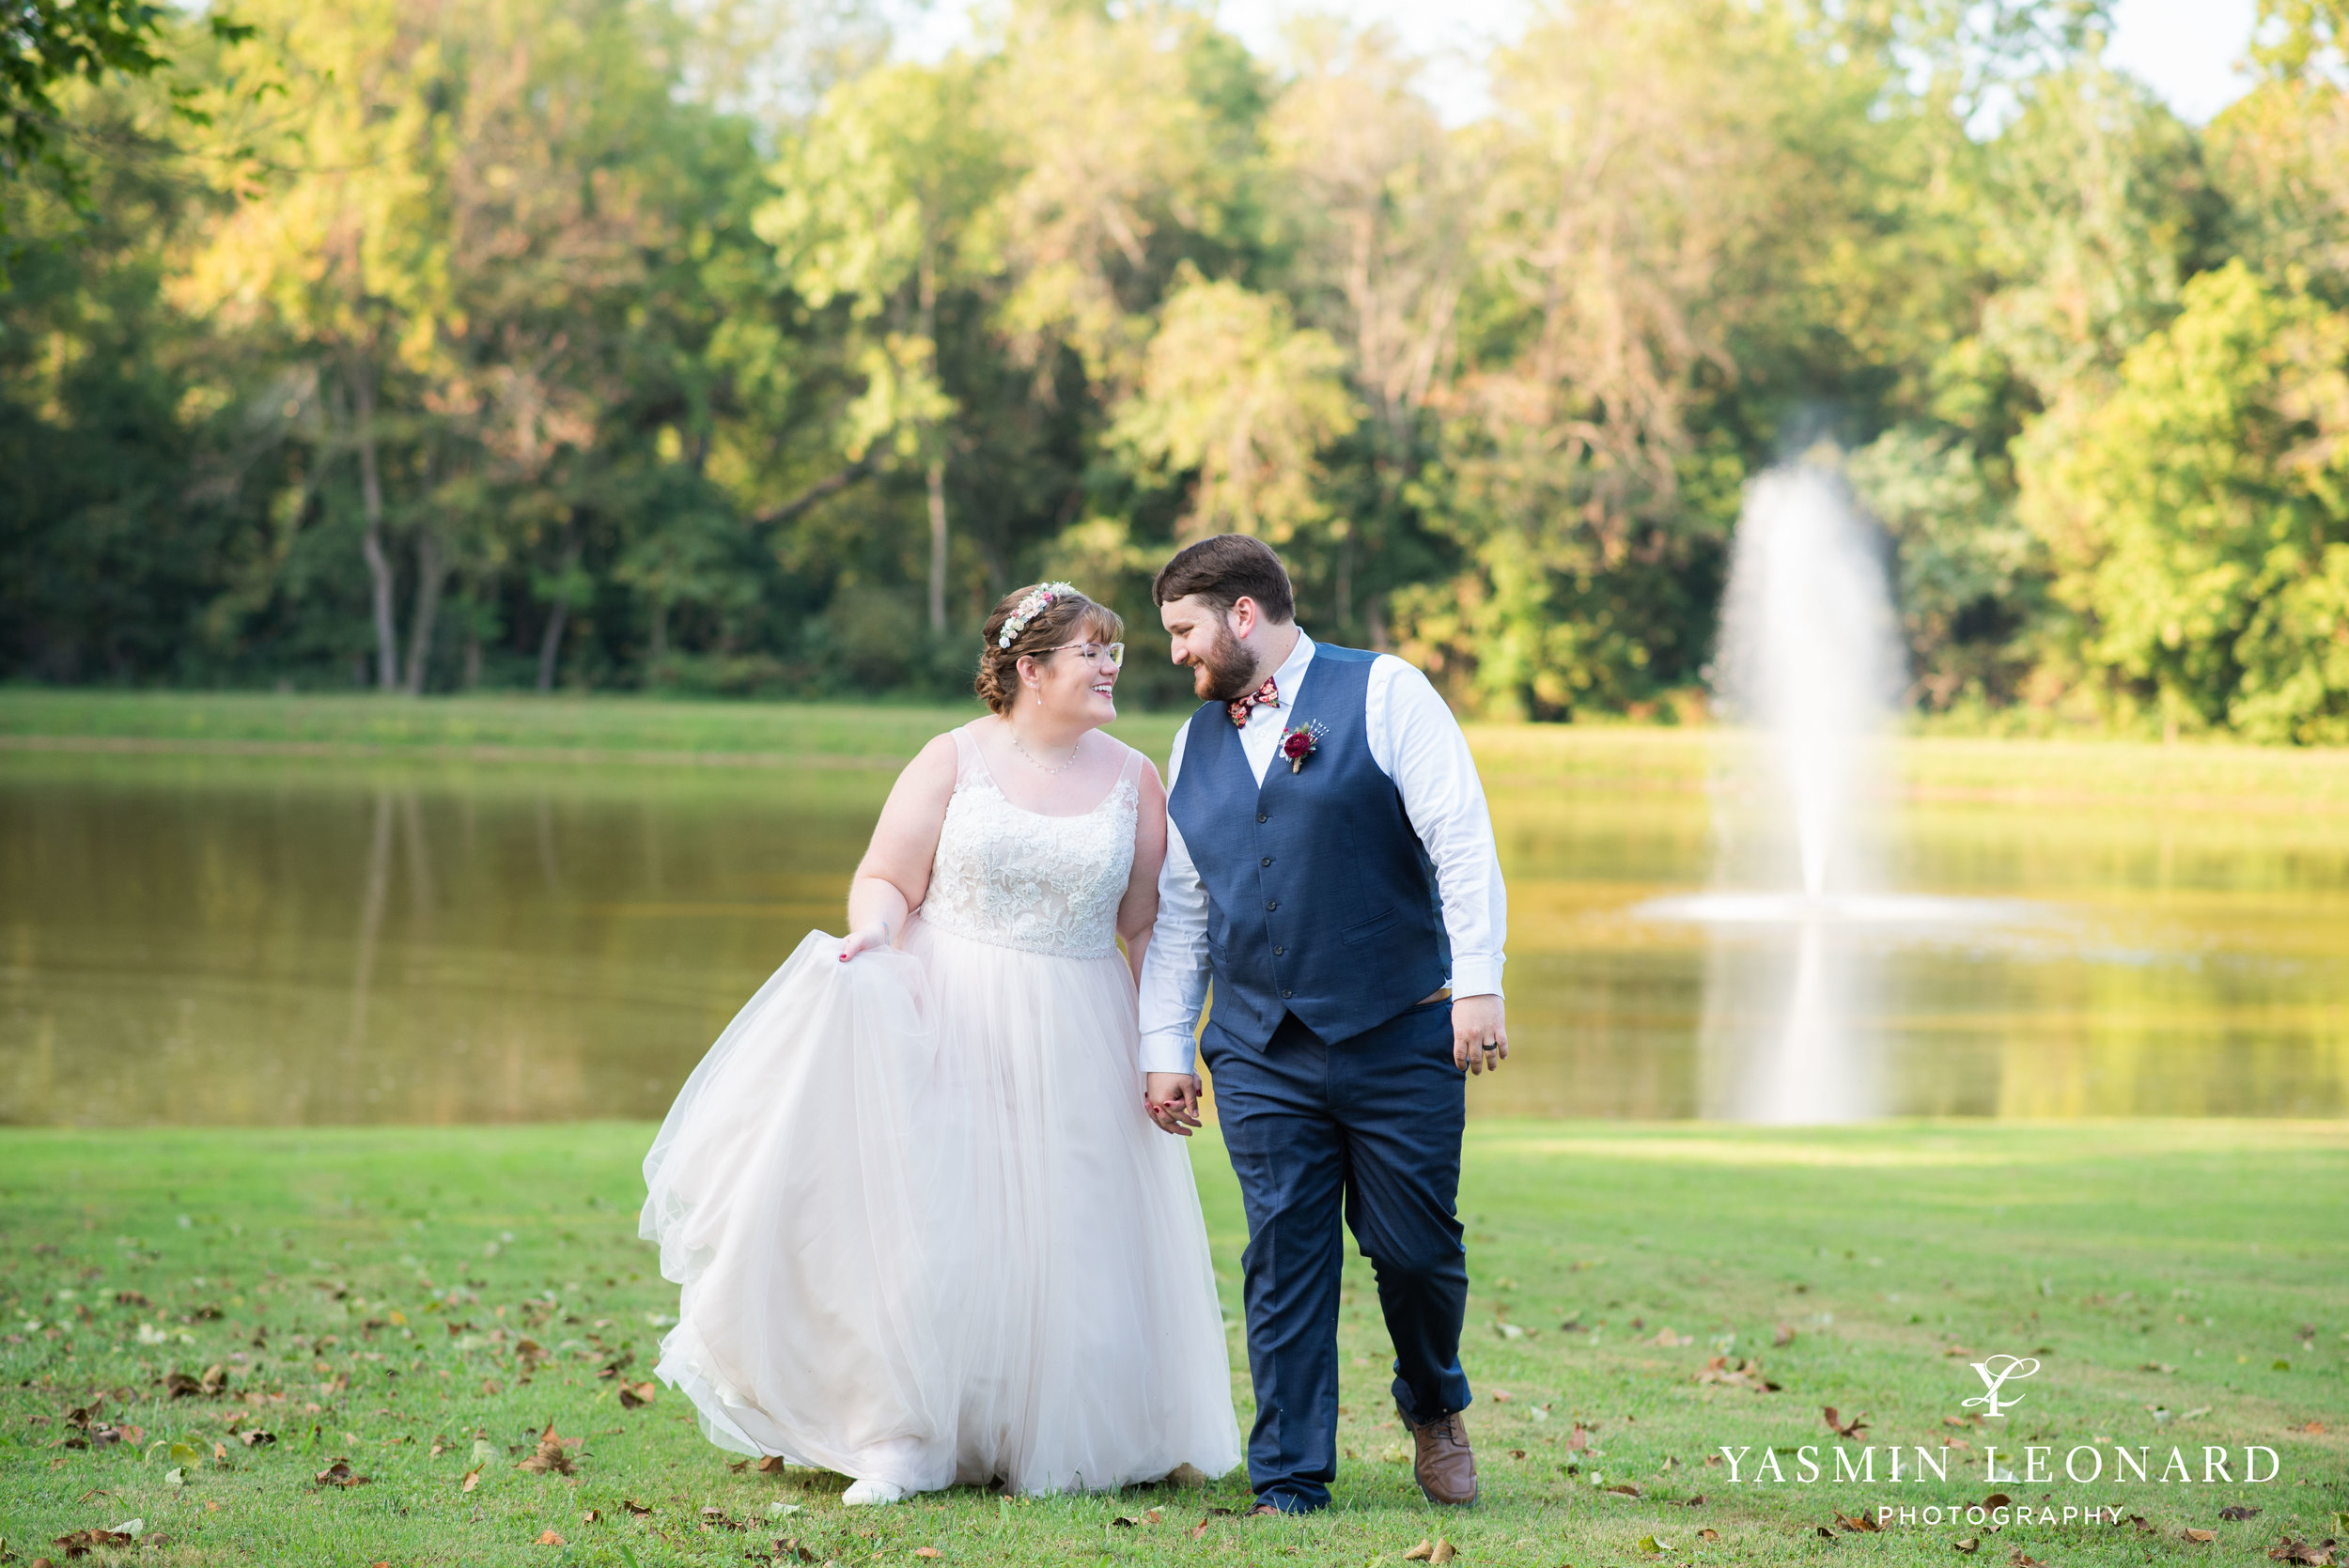 Hannah and David - l'abri at Linwood - NC Barn Weddings - Guys and Girls on Bride's Side - How to incorporate guys with bridesmaids - navy fall wedding - high point photographer - nc wedding venues - triad weddings-35.jpg